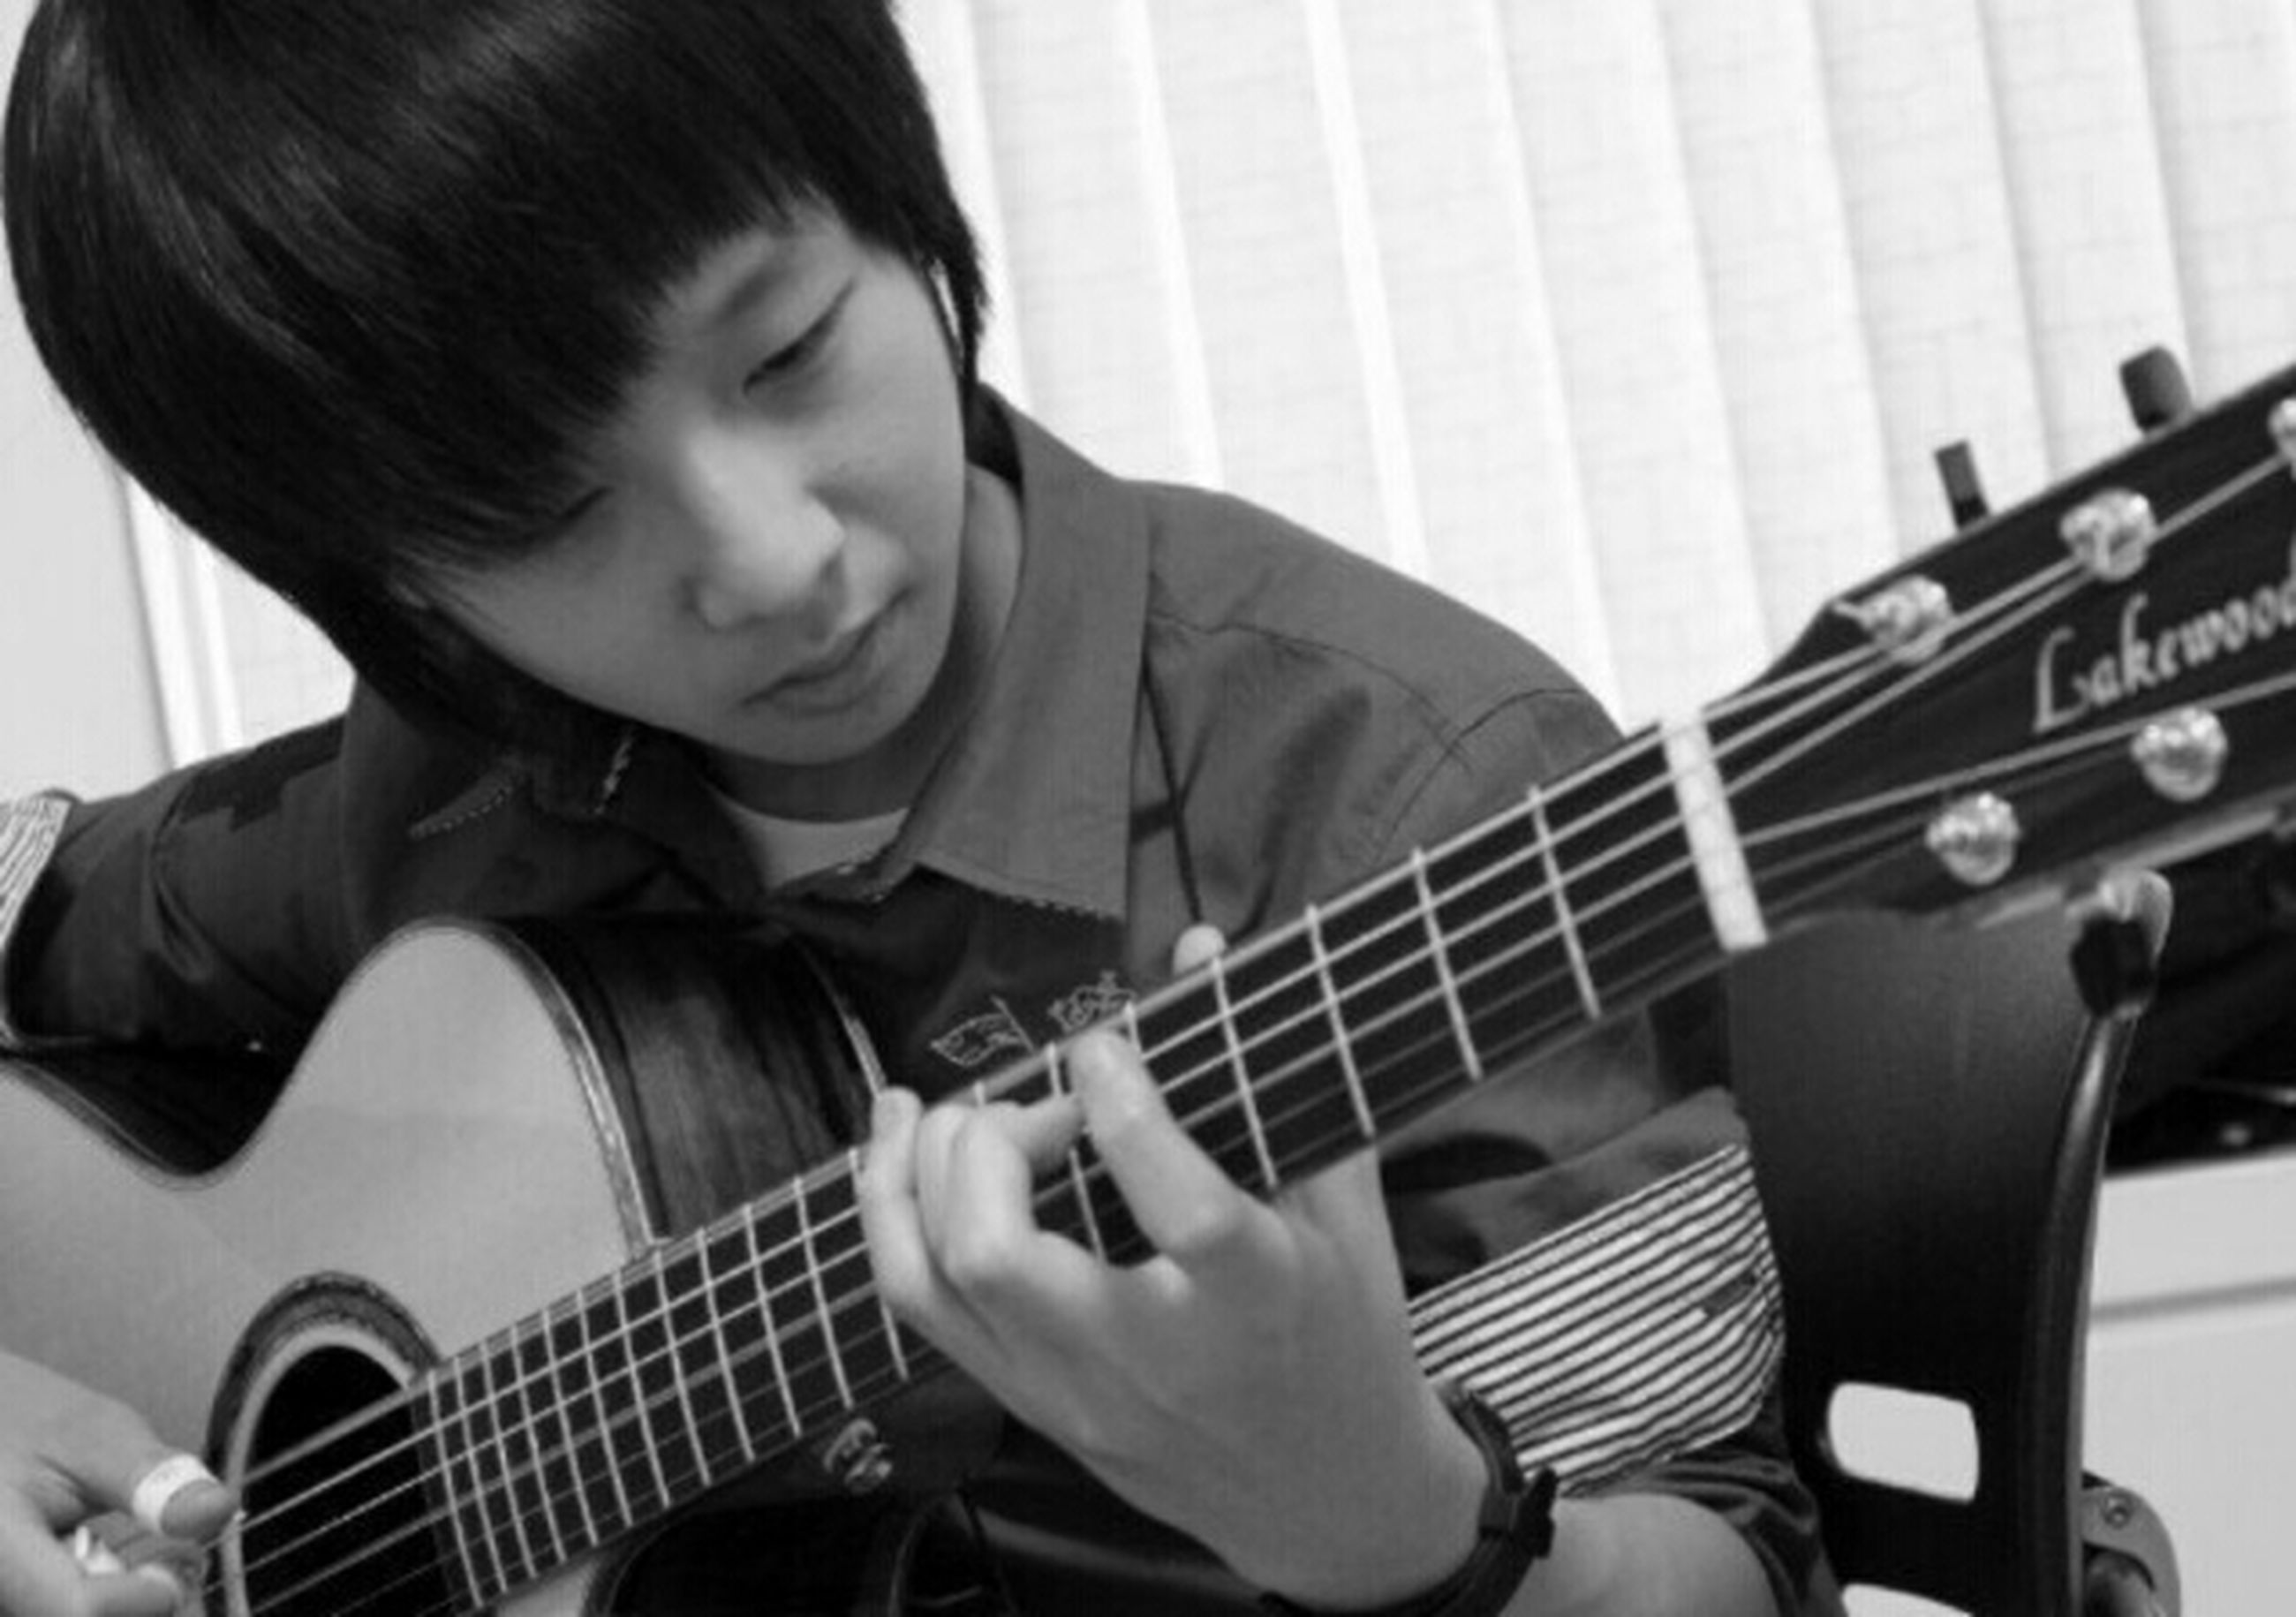 lifestyles, casual clothing, leisure activity, indoors, person, holding, music, musical instrument, sitting, arts culture and entertainment, childhood, playing, occupation, guitar, side view, three quarter length, boys, waist up